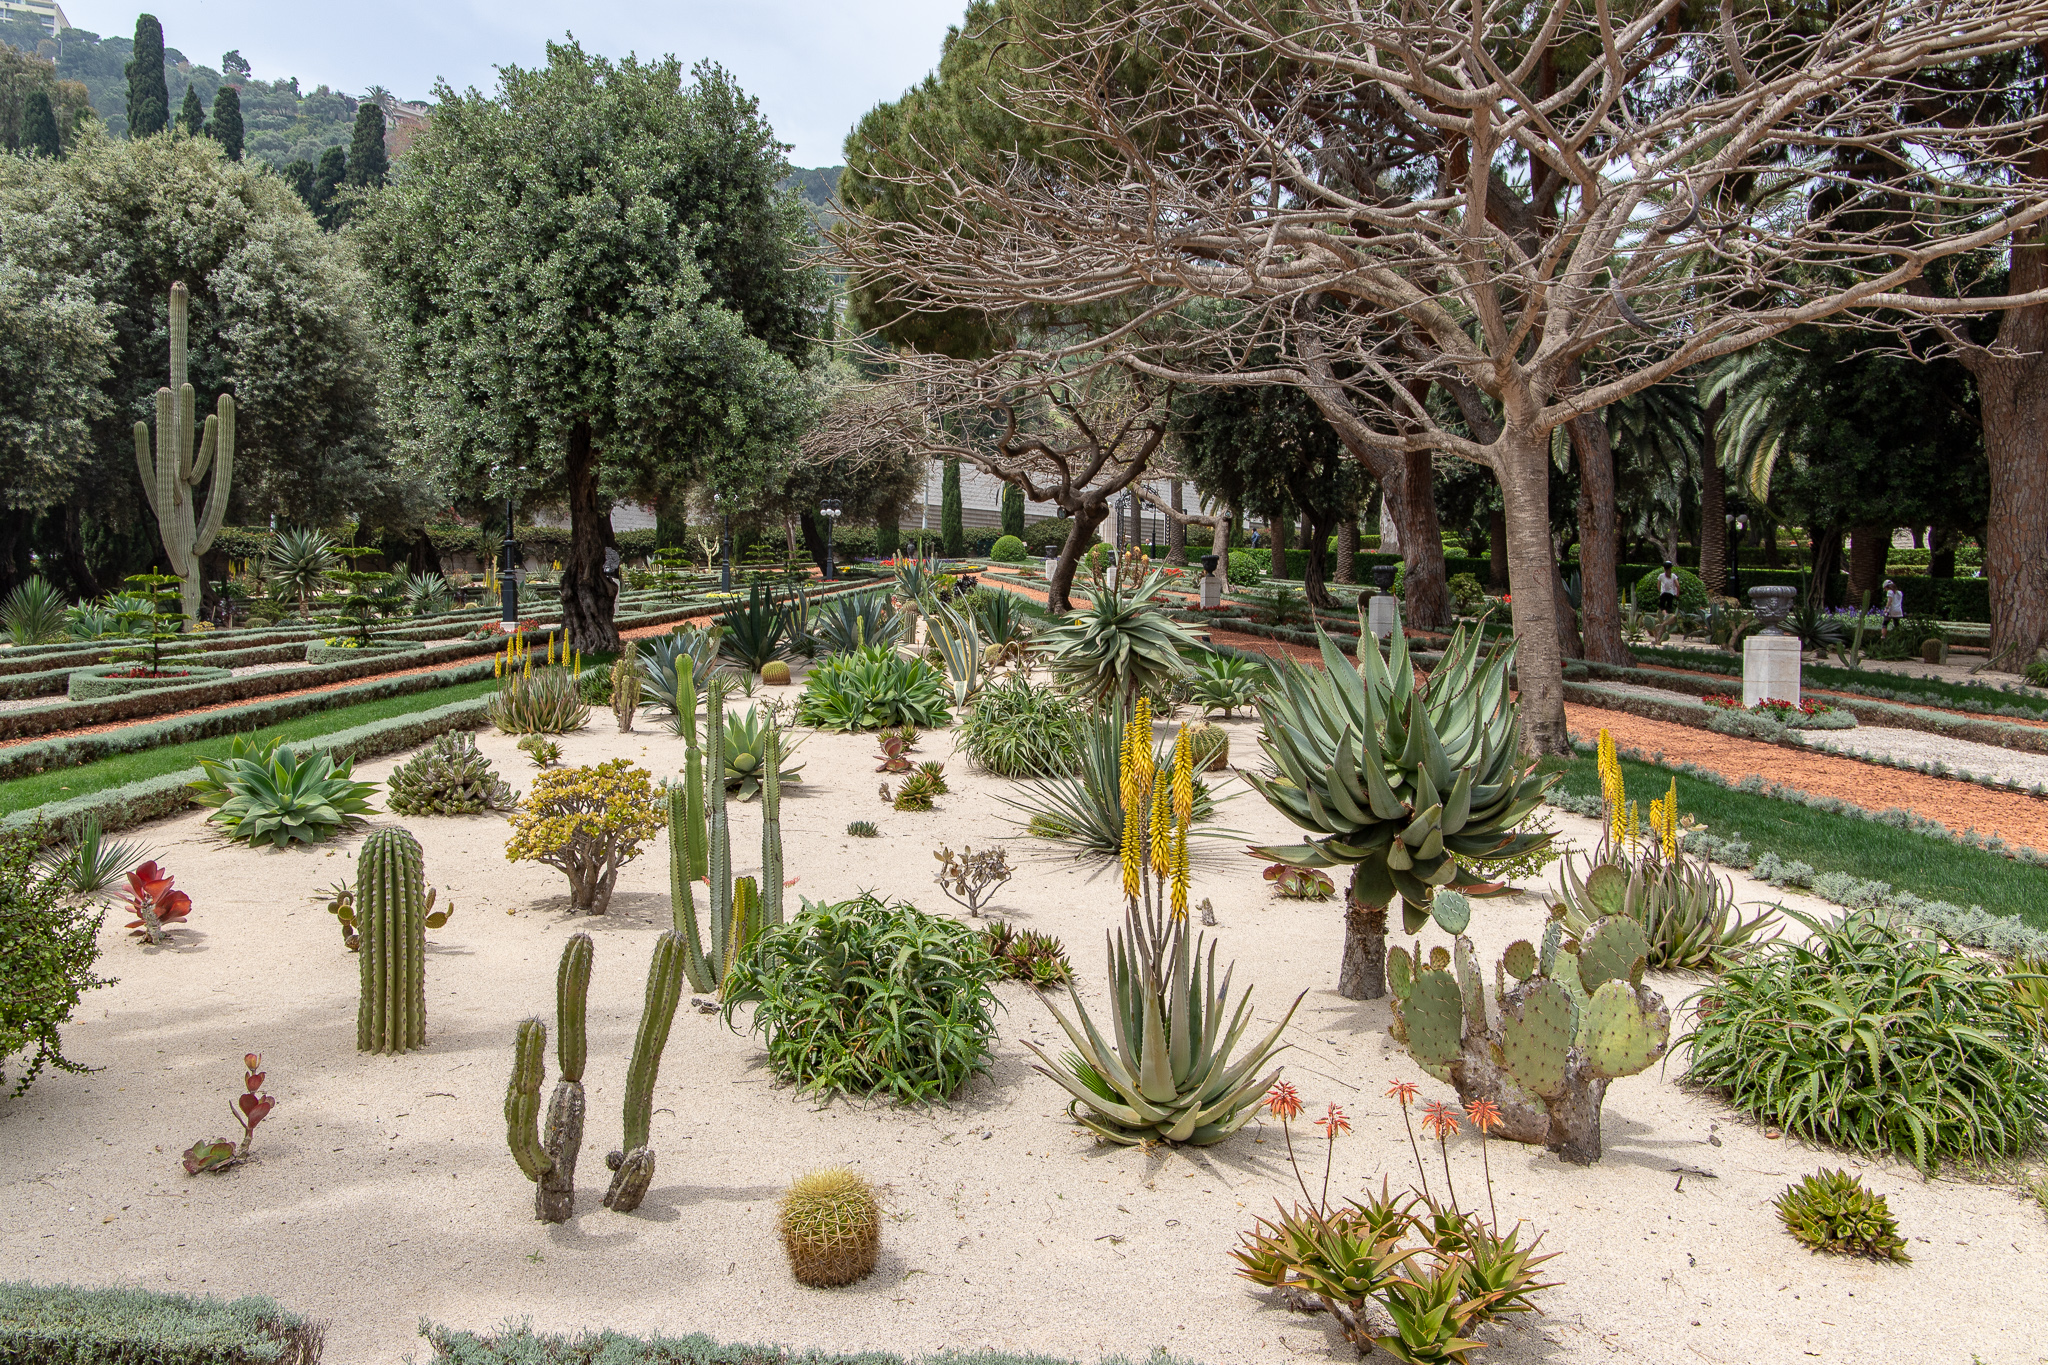 And cactuses - this place has it all